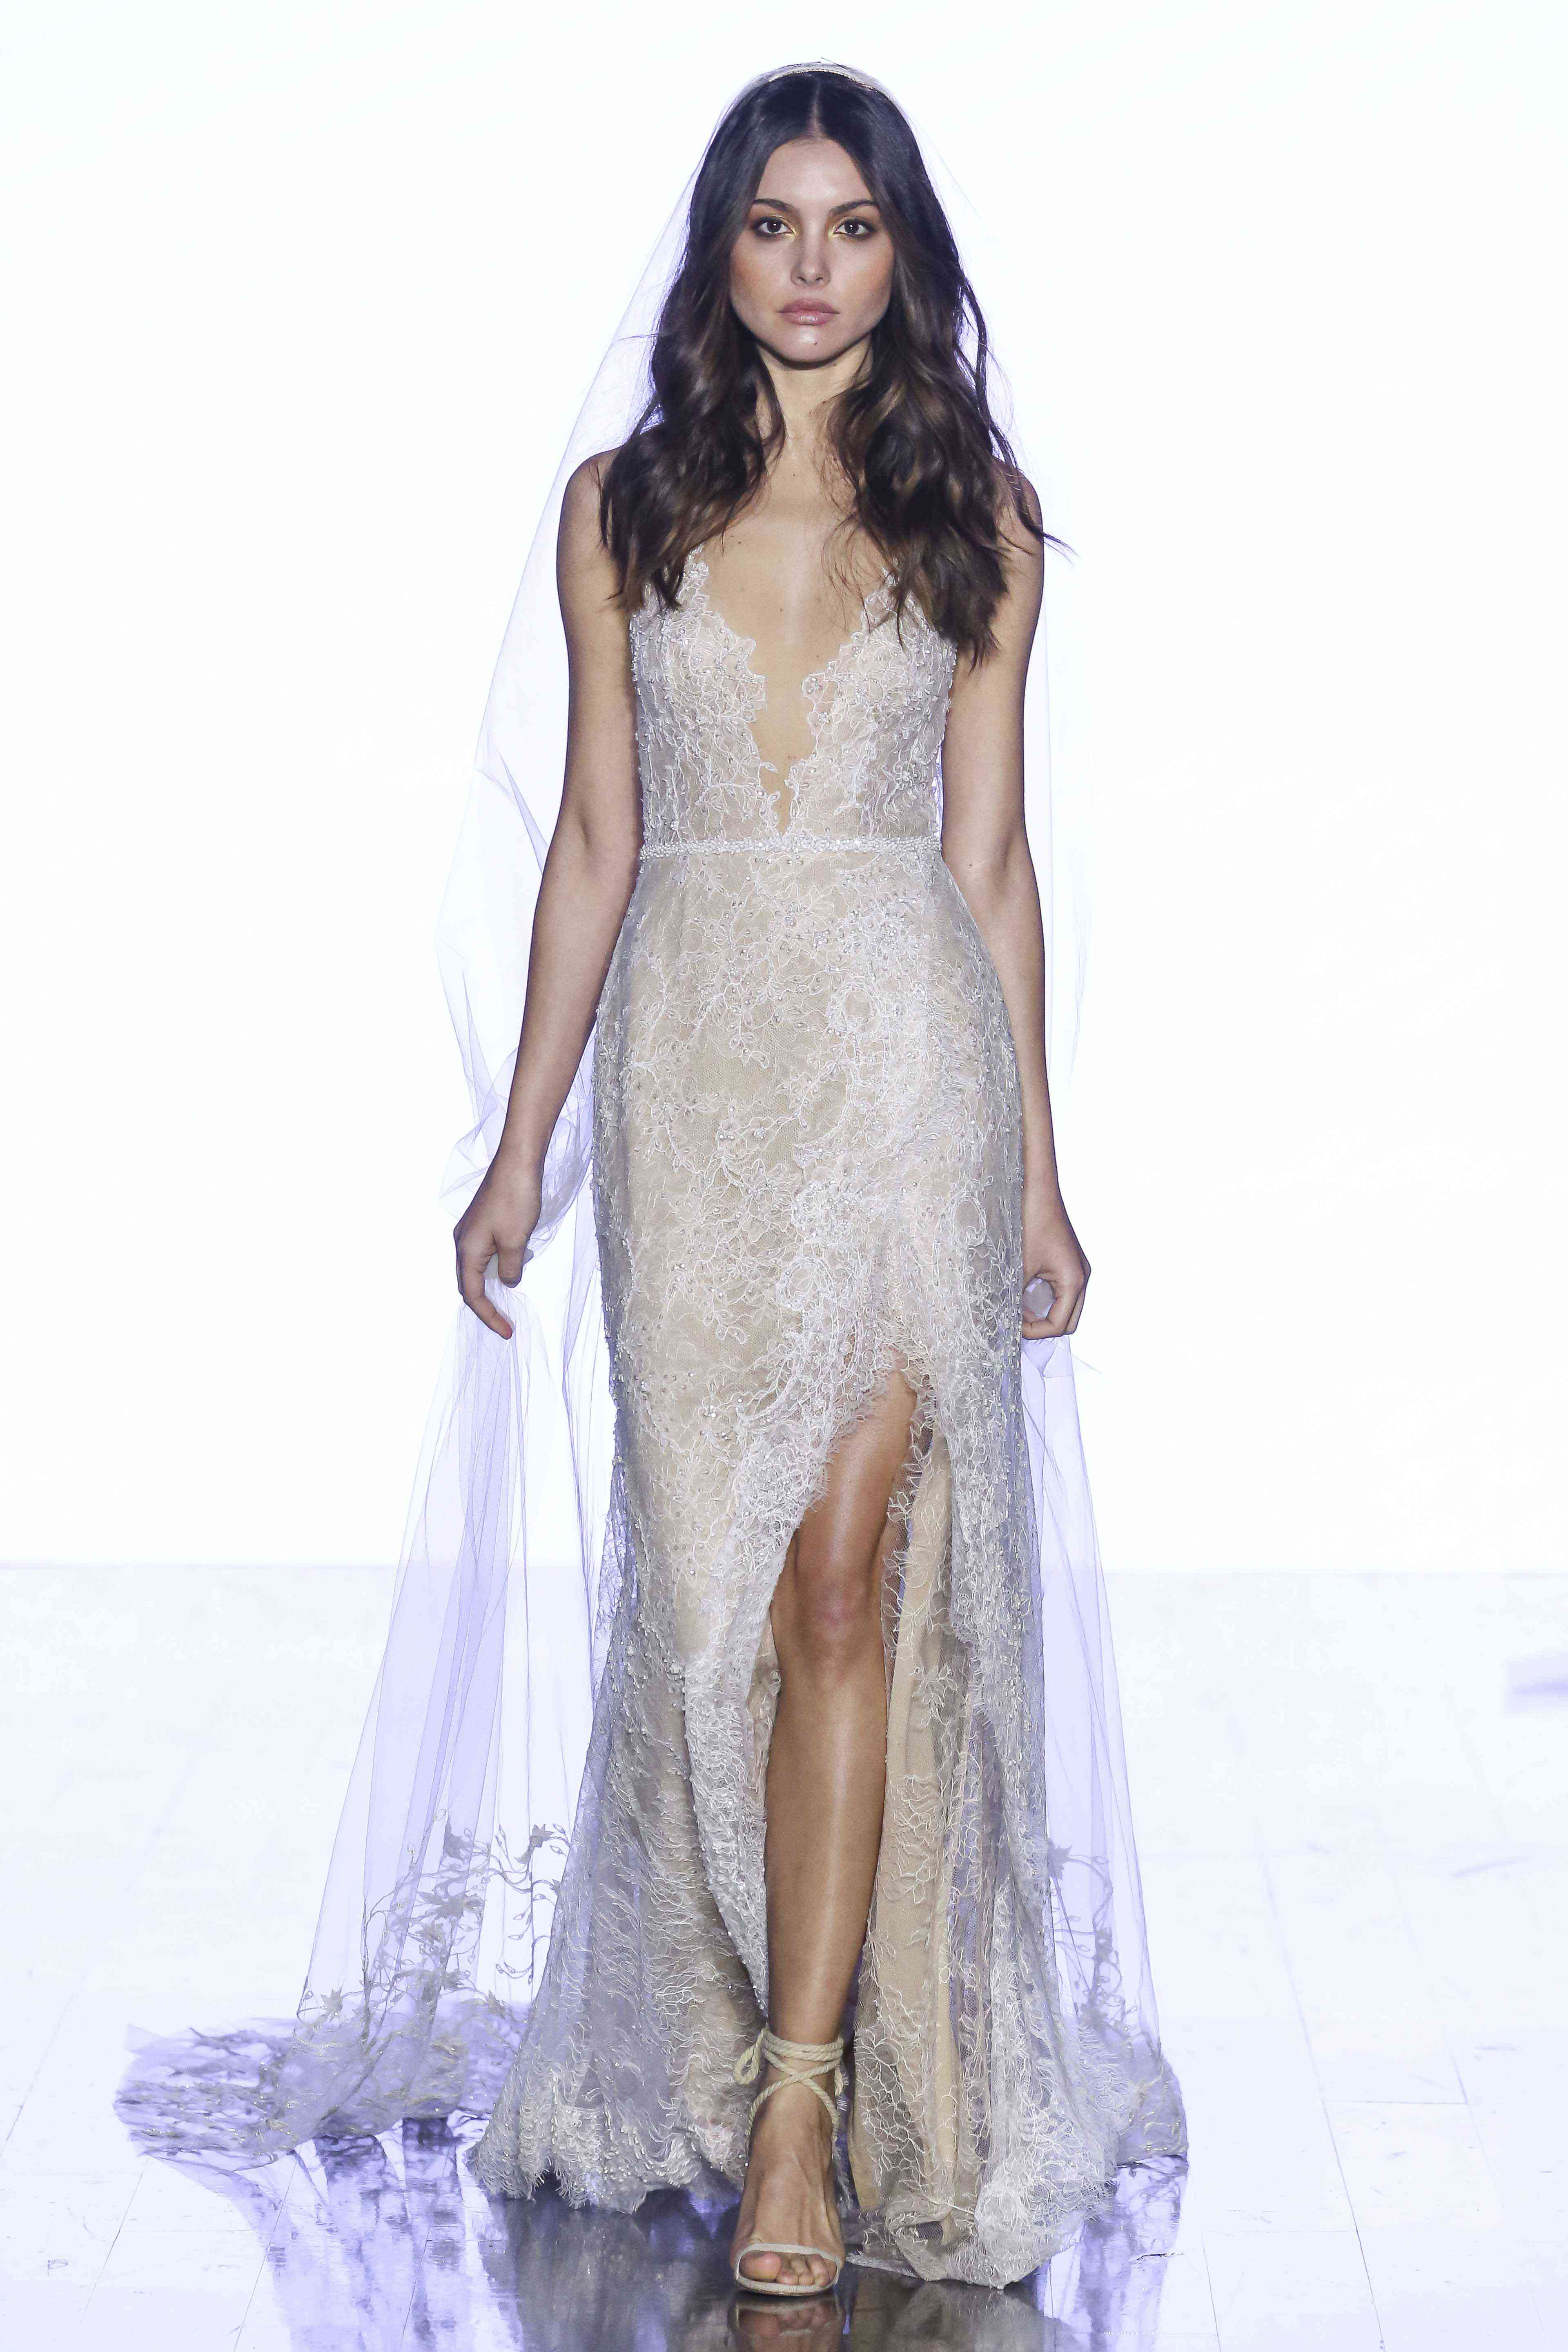 Model in V-neck beaded lace sheath gown with front skirt slit